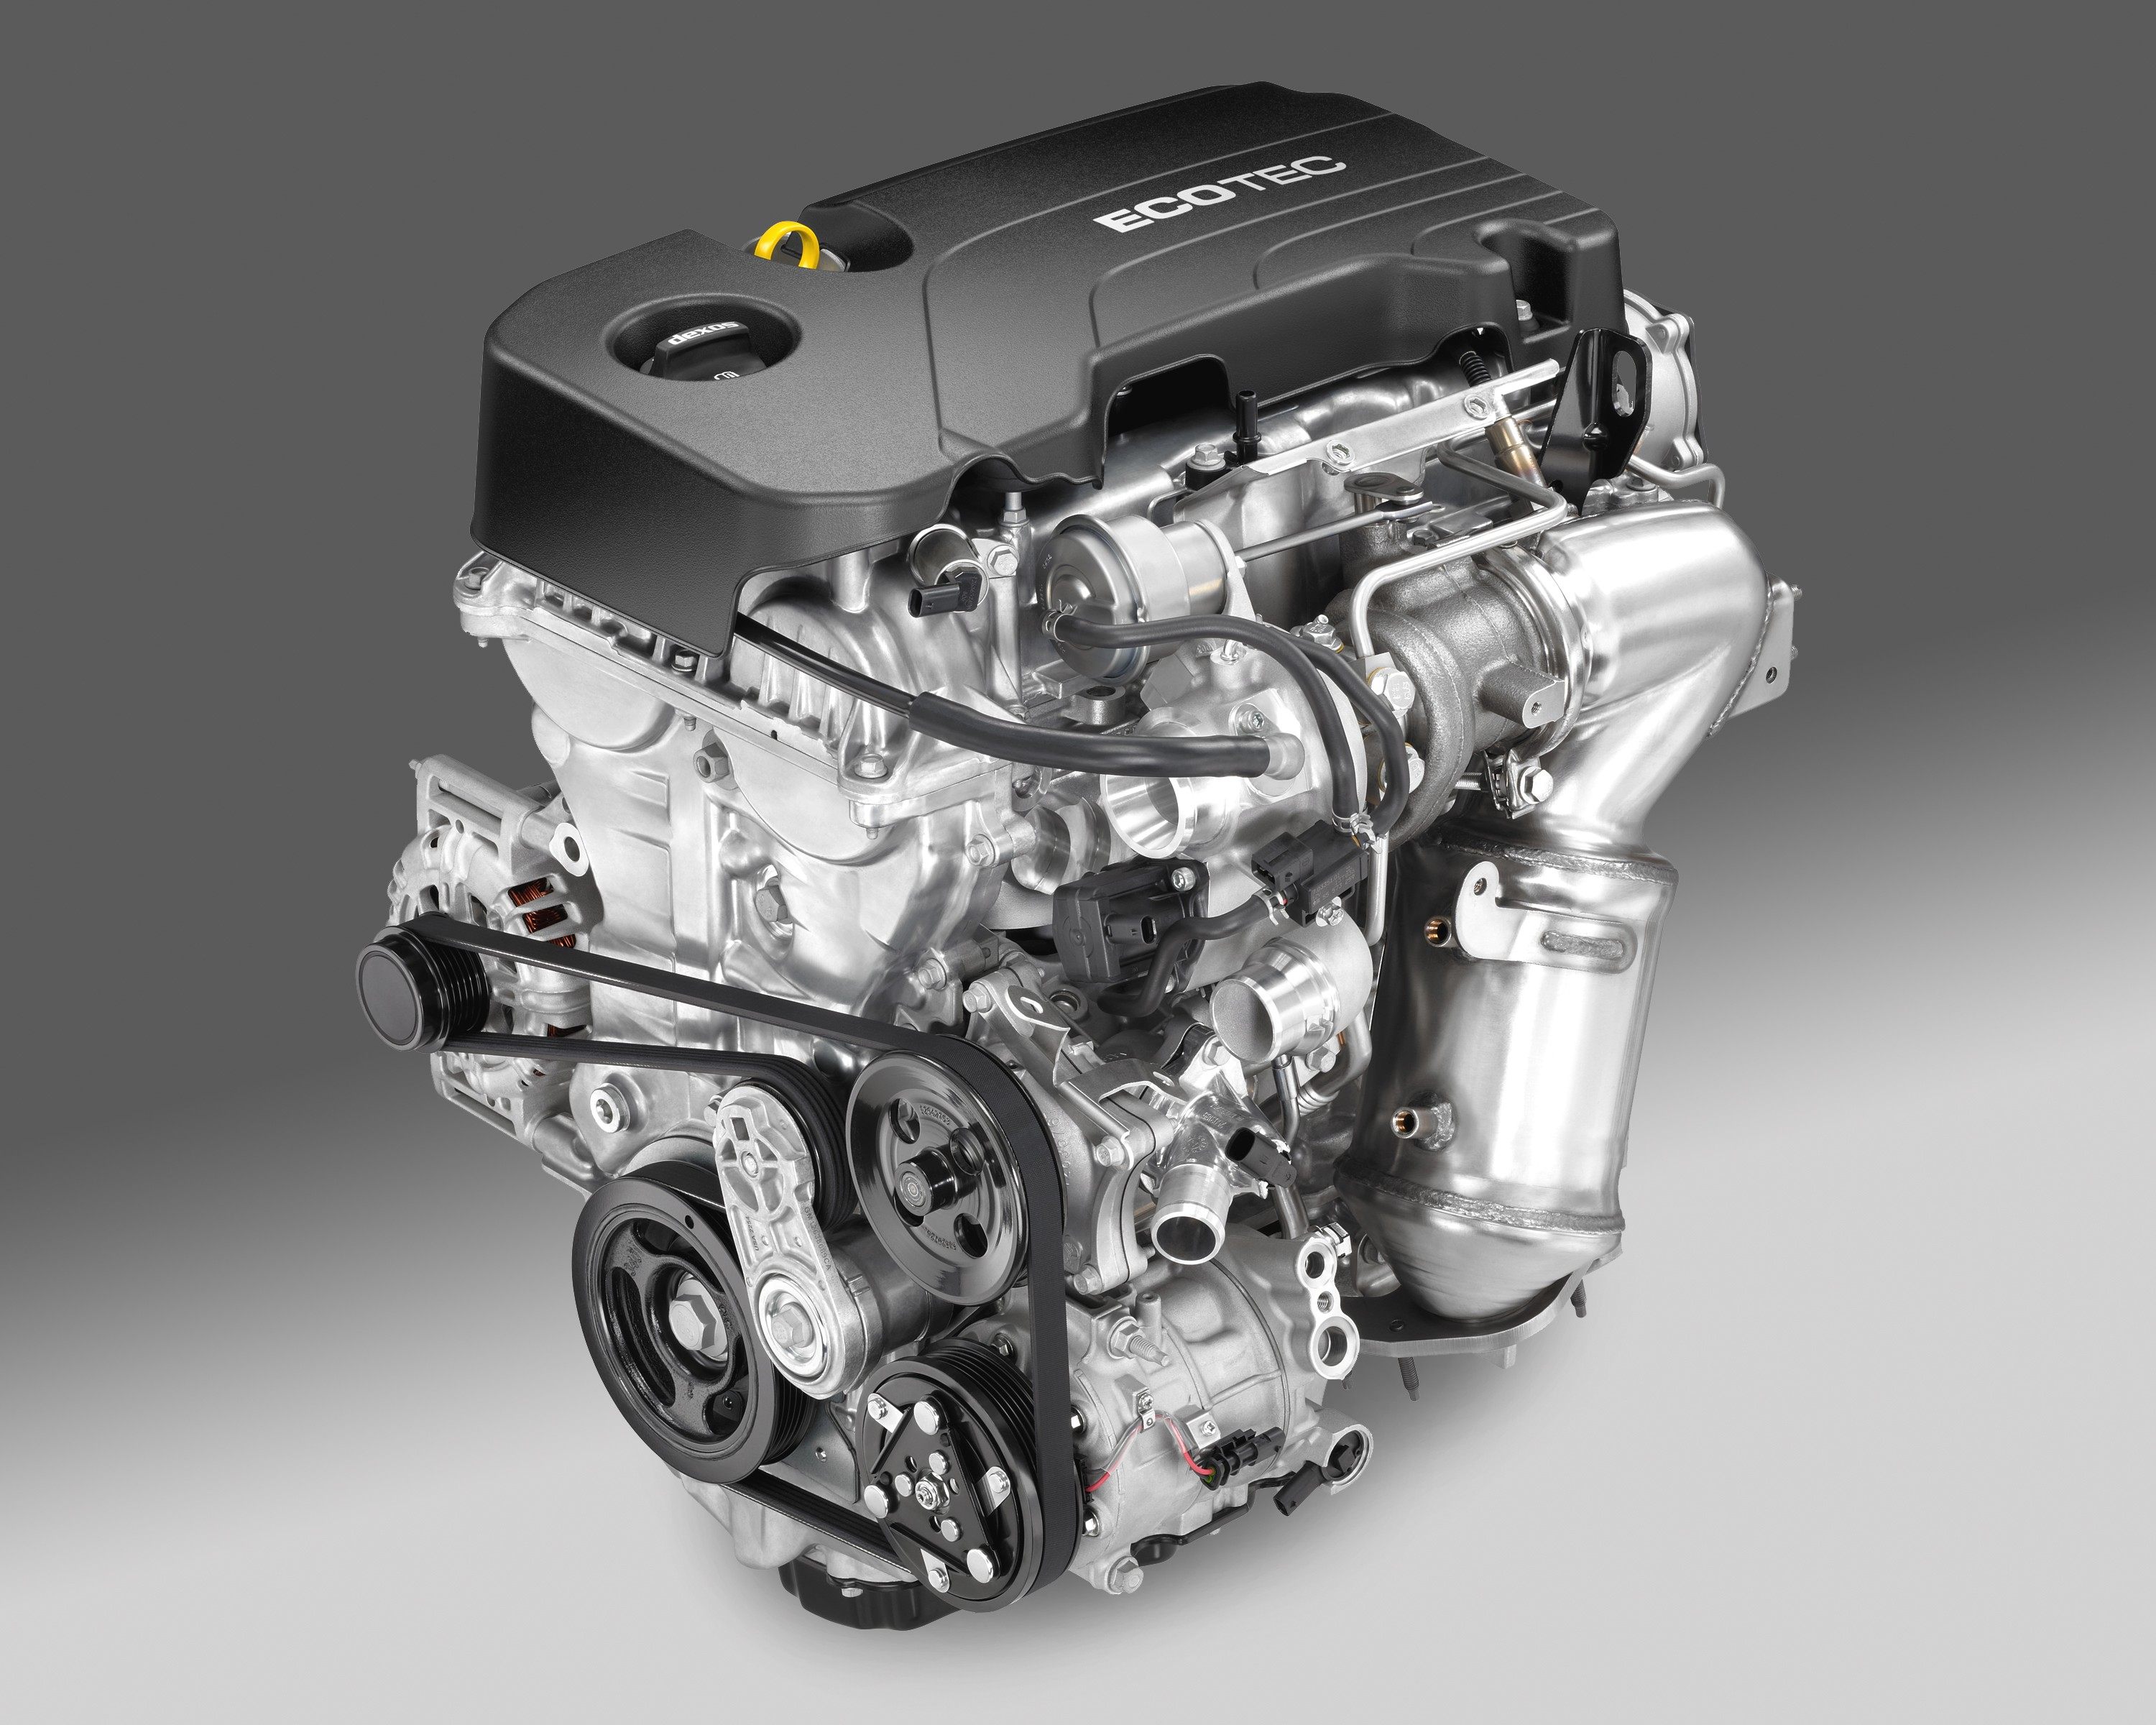 New 1 4 Ecotec Turbo For 2015 Opel Astra Delivers 125 And